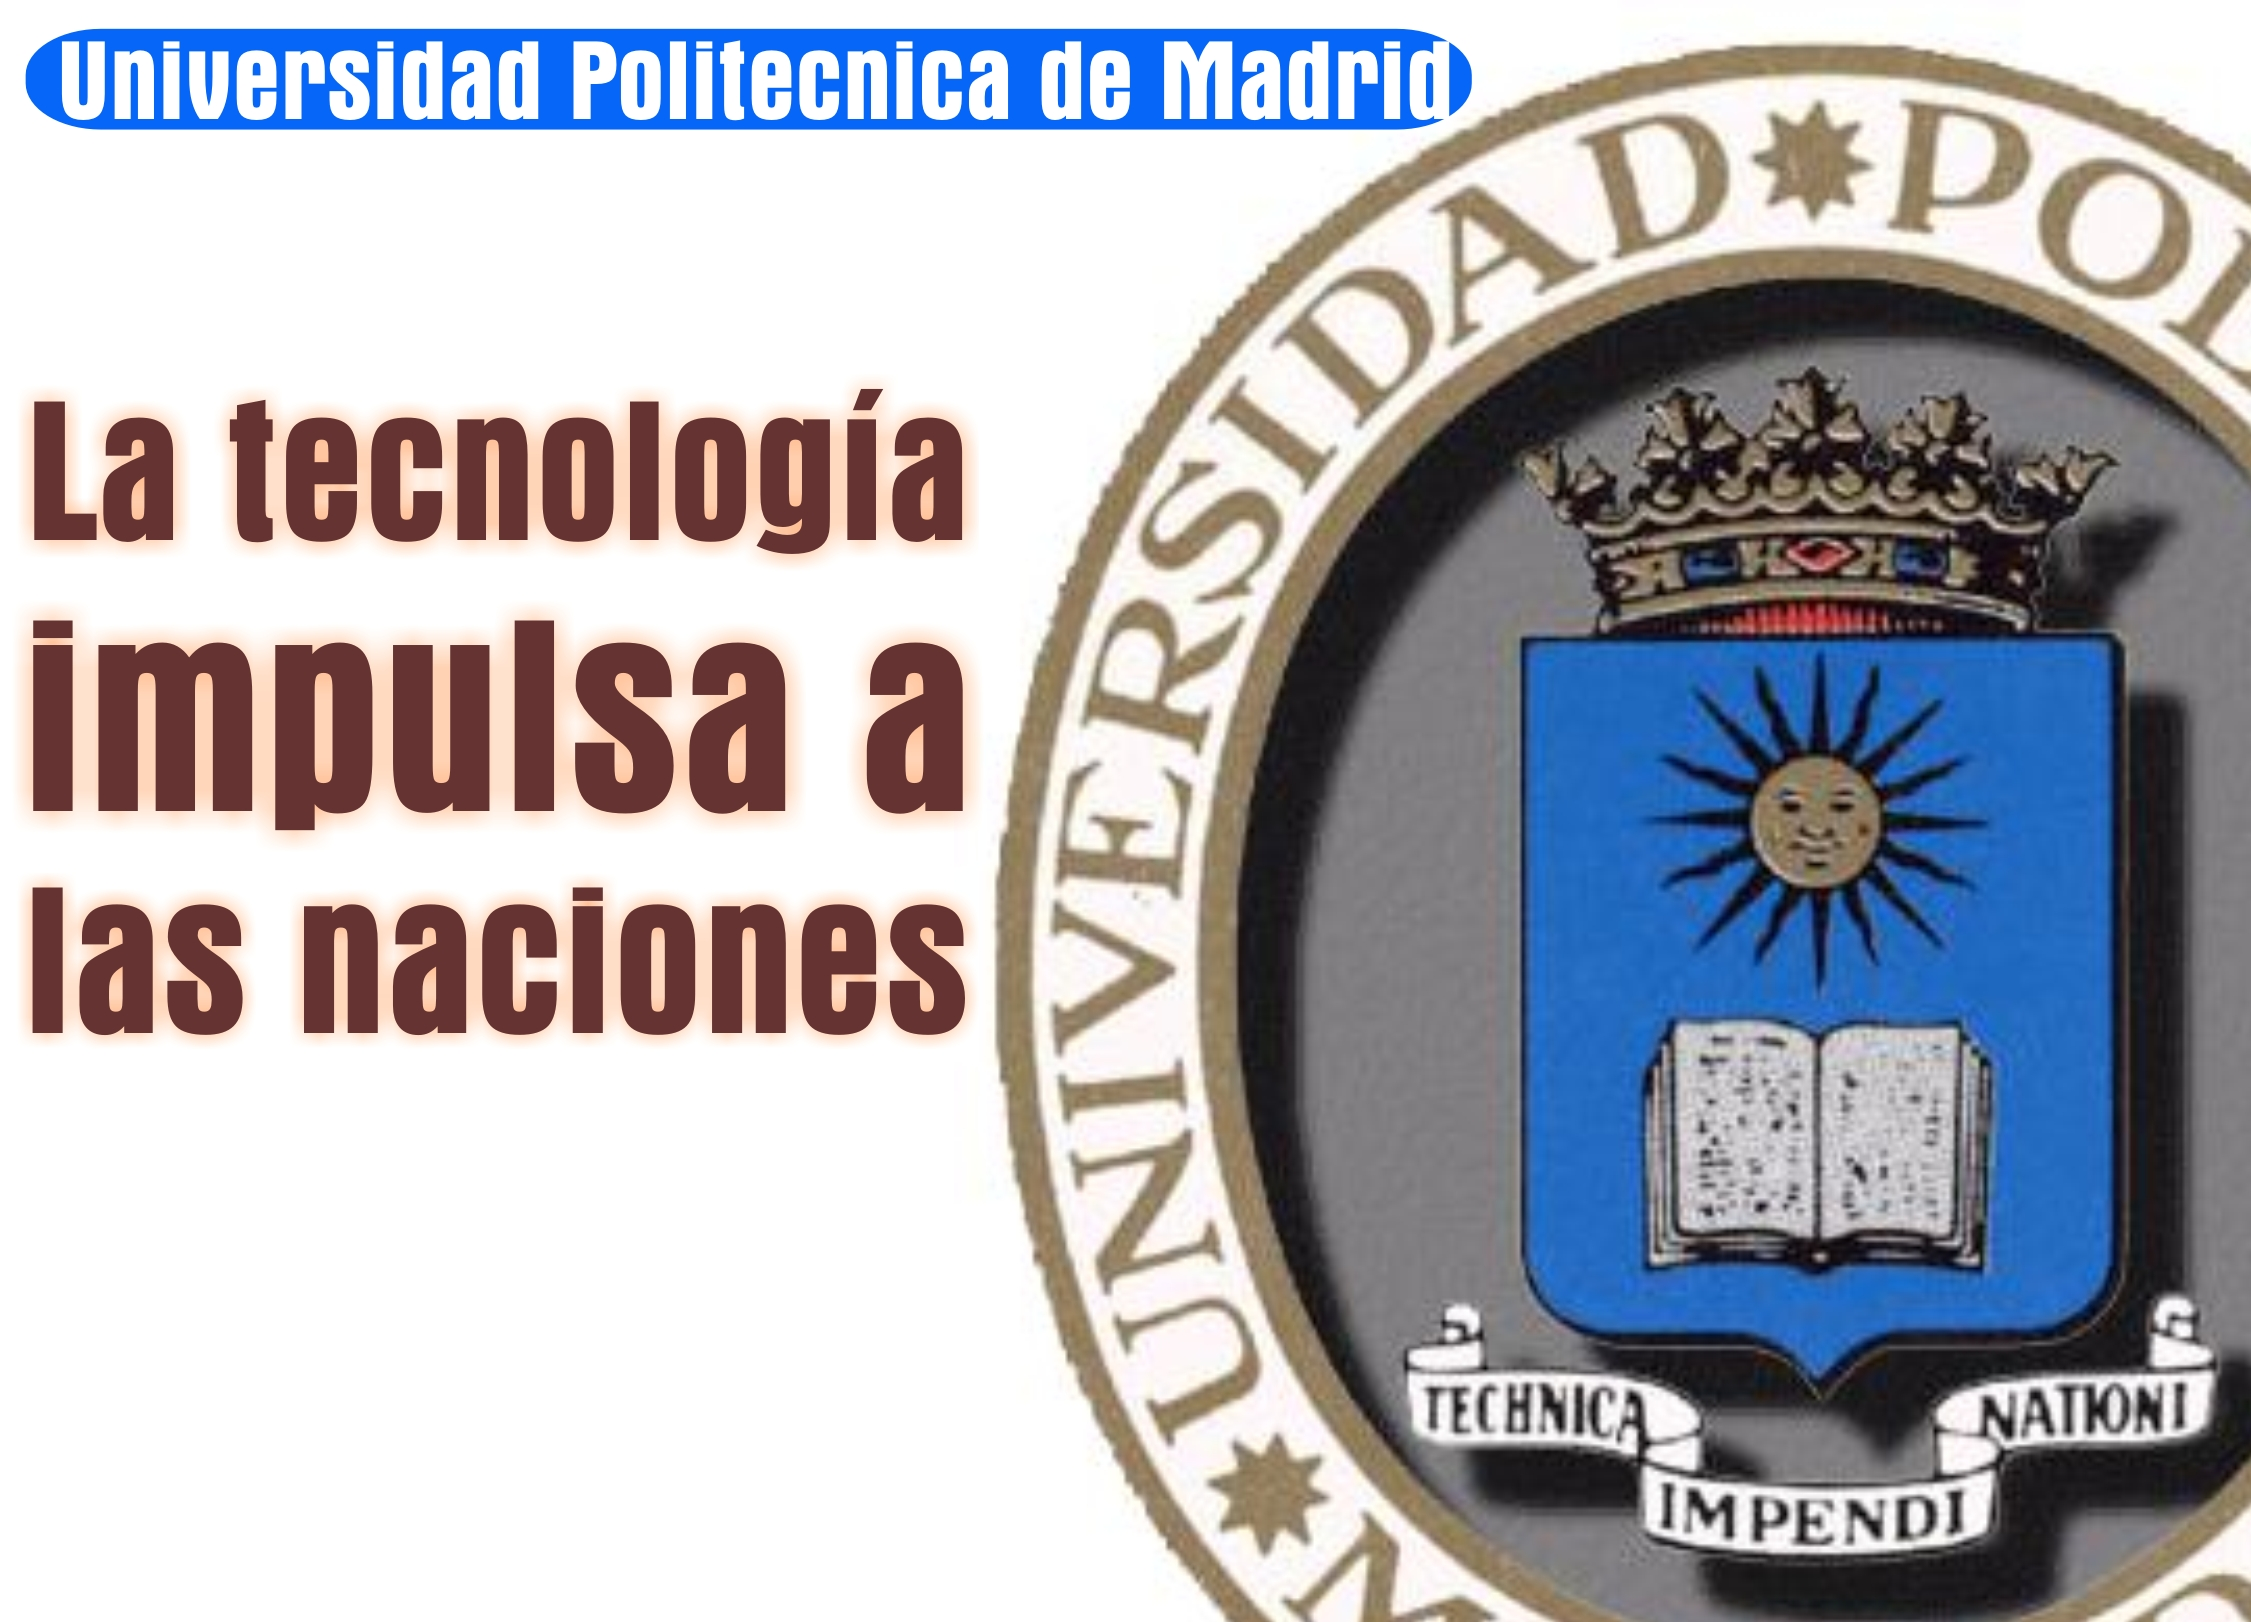 Universidad polit cnica de madrid escudo universidad for Universidad de madrid